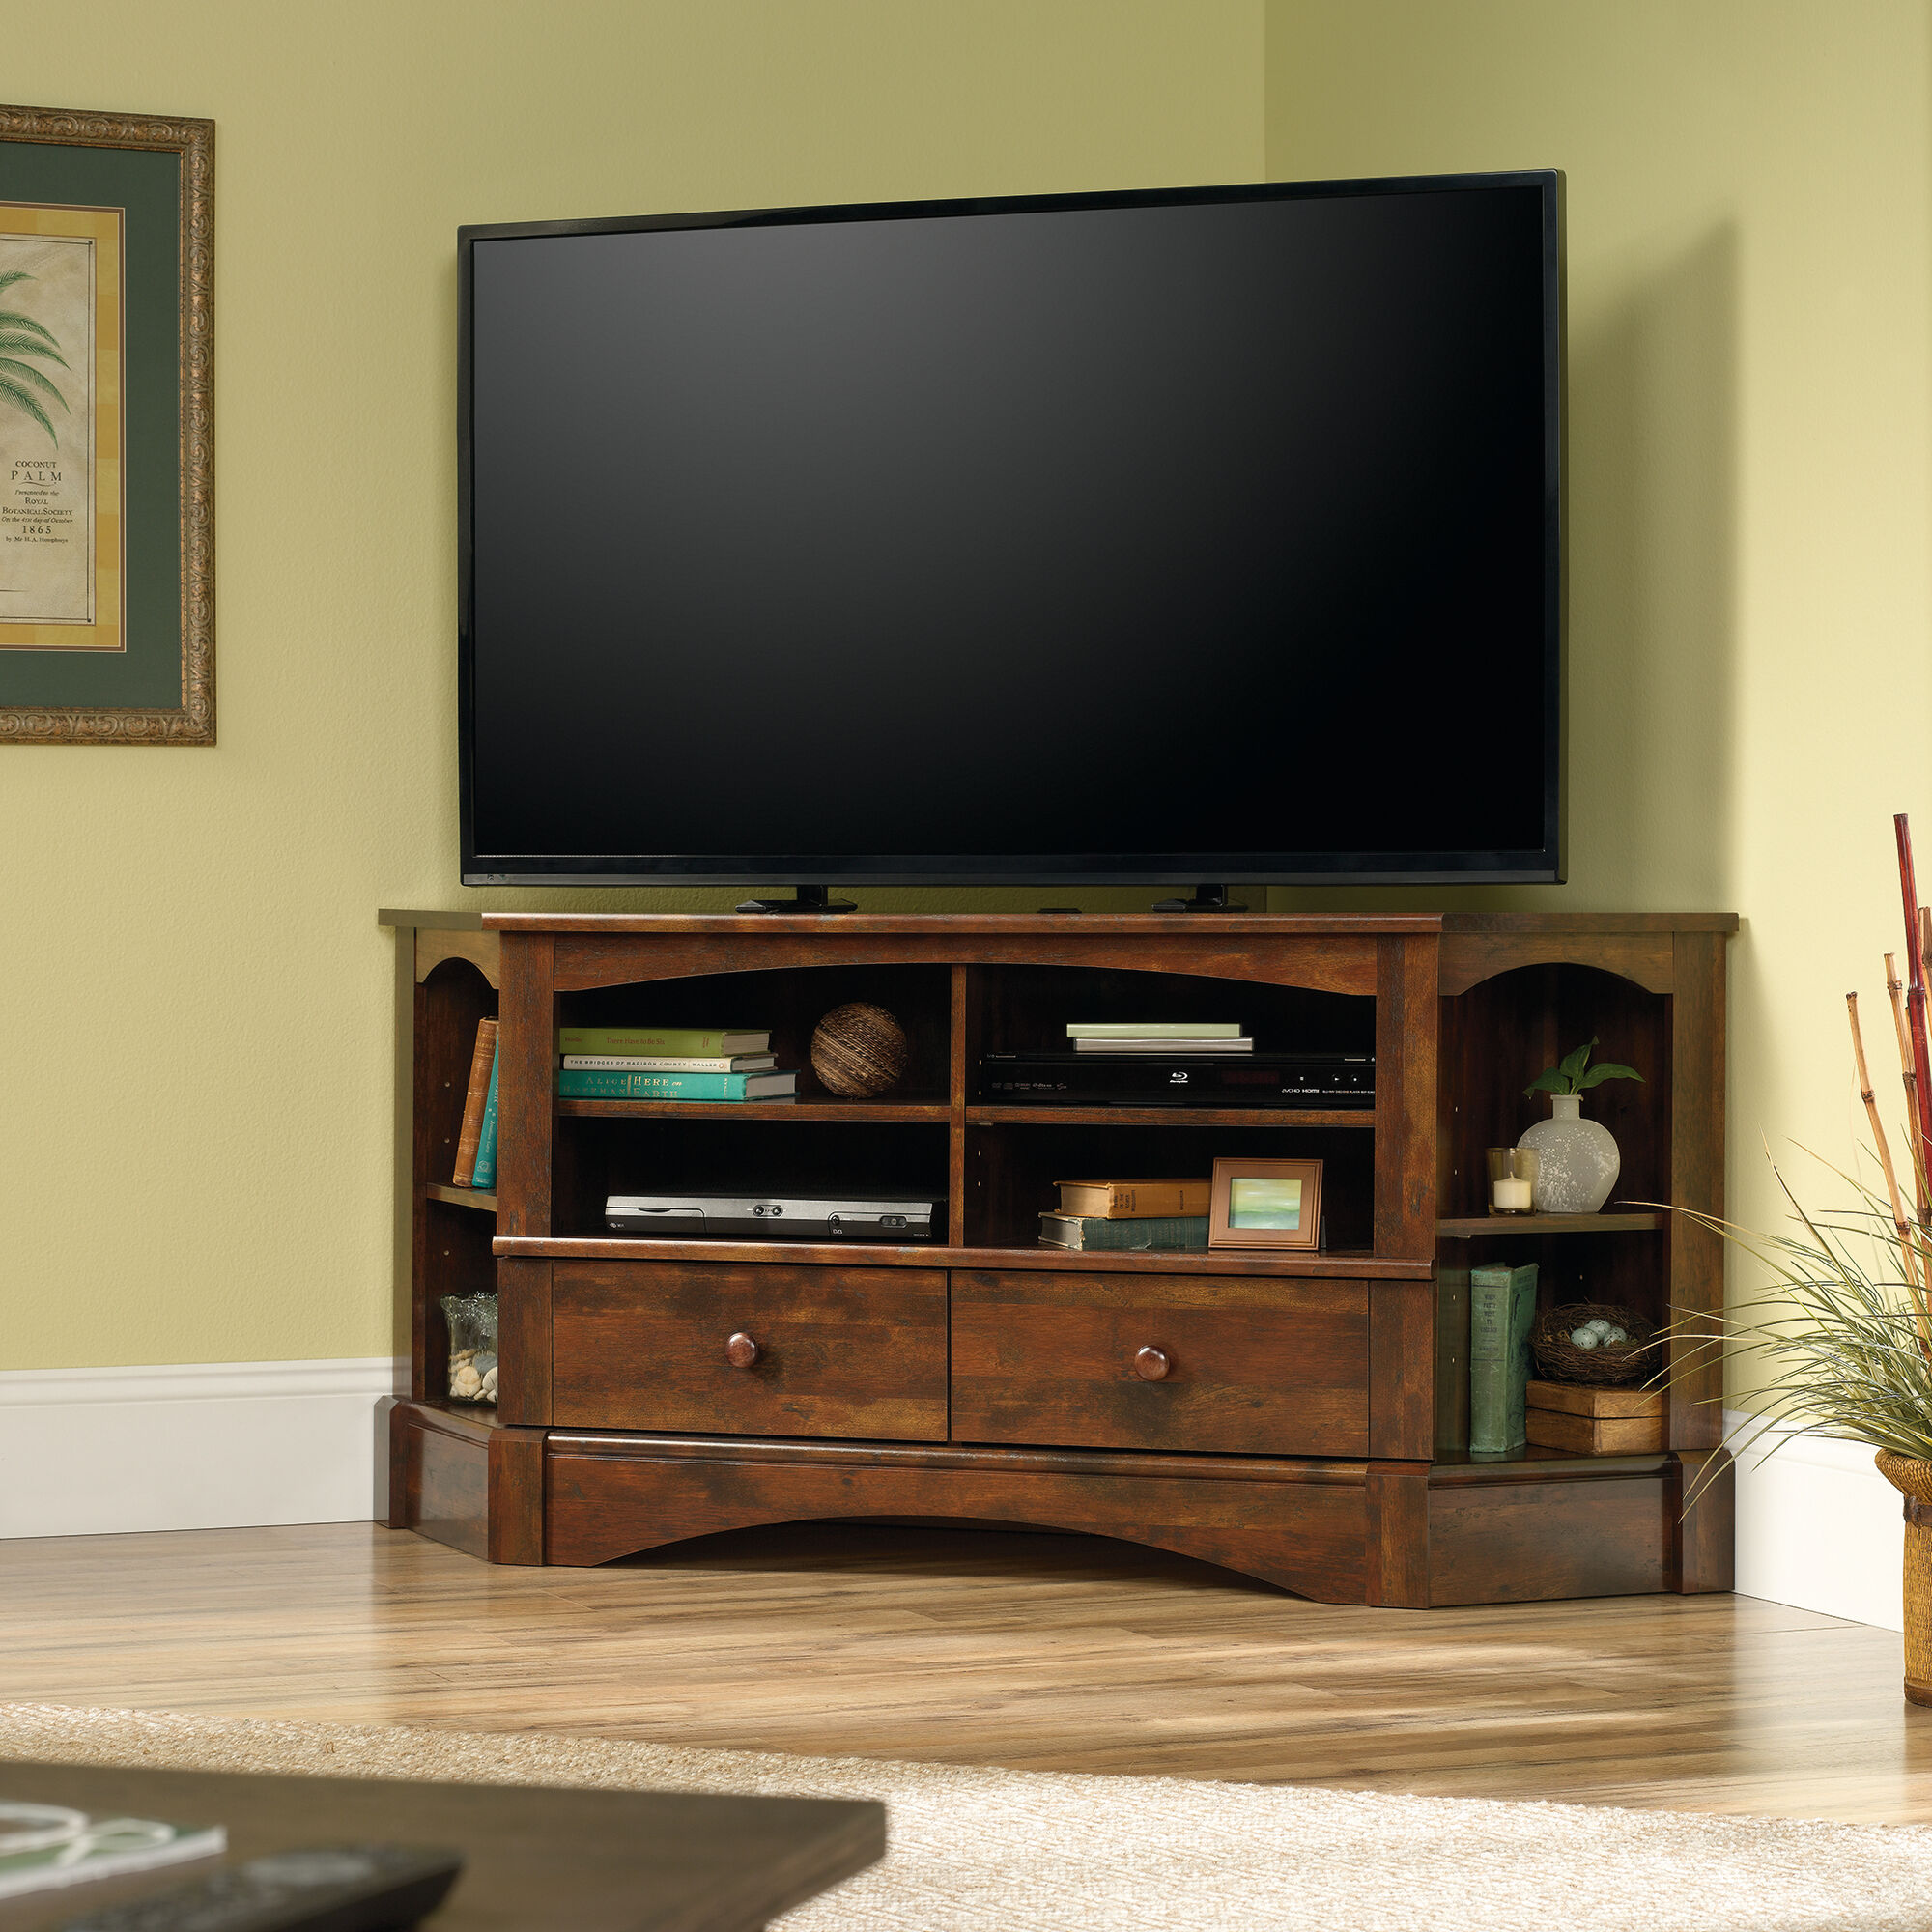 Two Corner Shelf Contemporary Entertainment Credenza In Curado Cherry Mathis Brothers Furniture